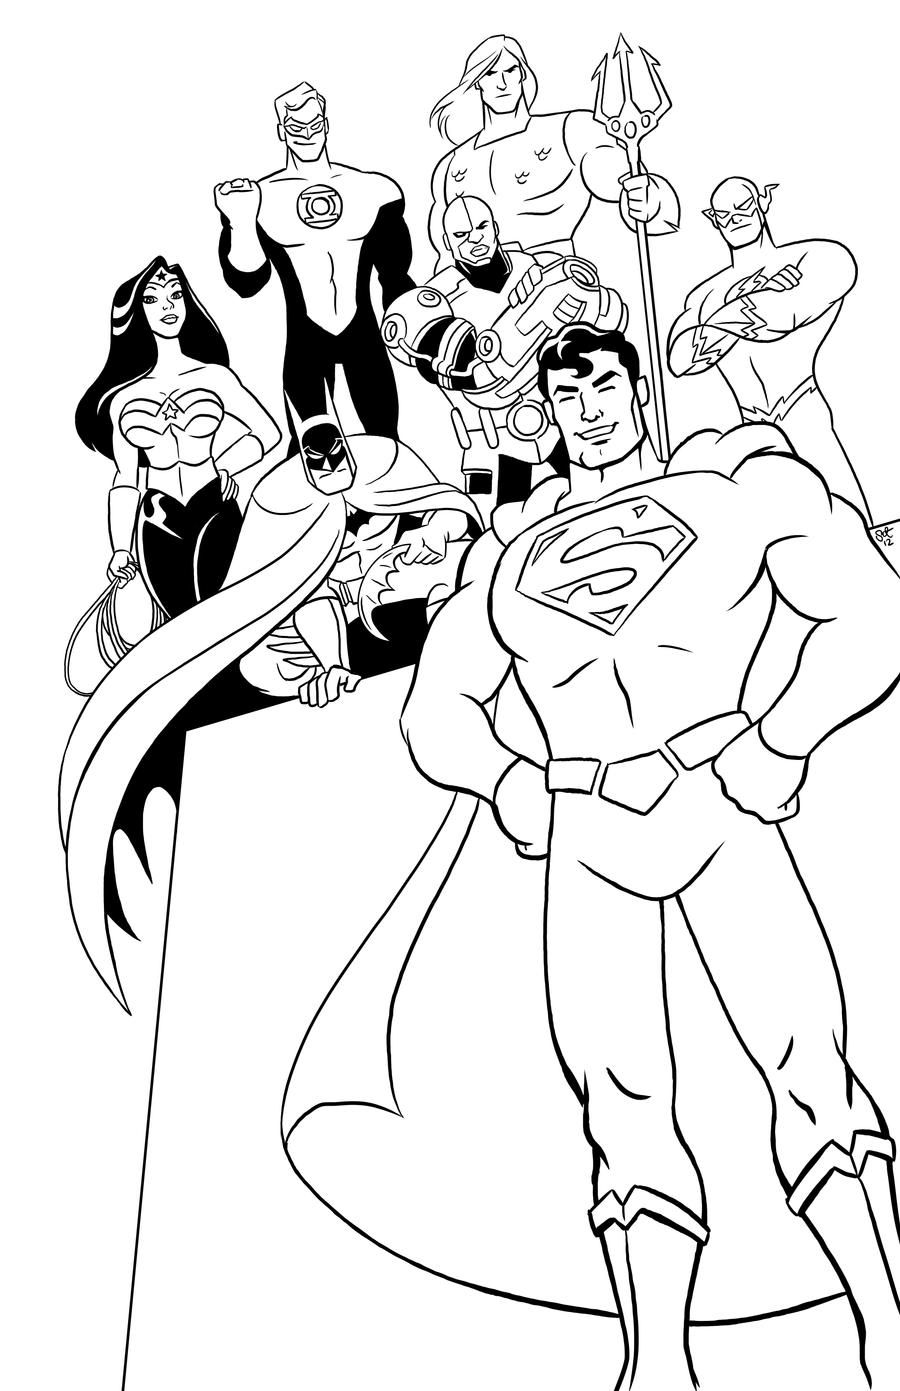 Nightwing New 52 Coloring Pages 50737 | TIMEHD